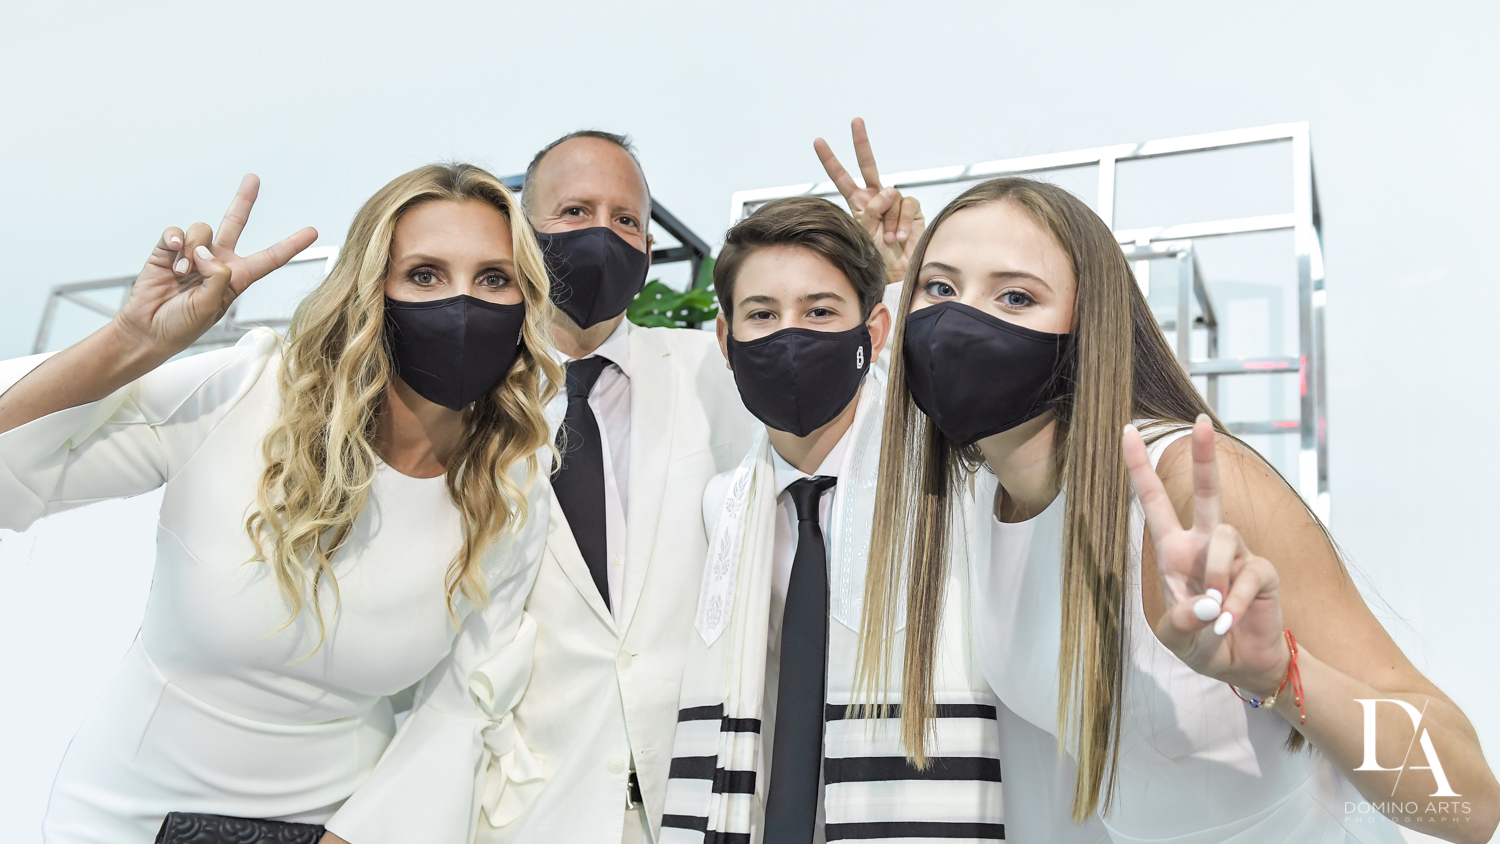 personalized masks for Monochrome Bar Mitzvah Ceremony at Aventura Chabad by Domino Arts Photography